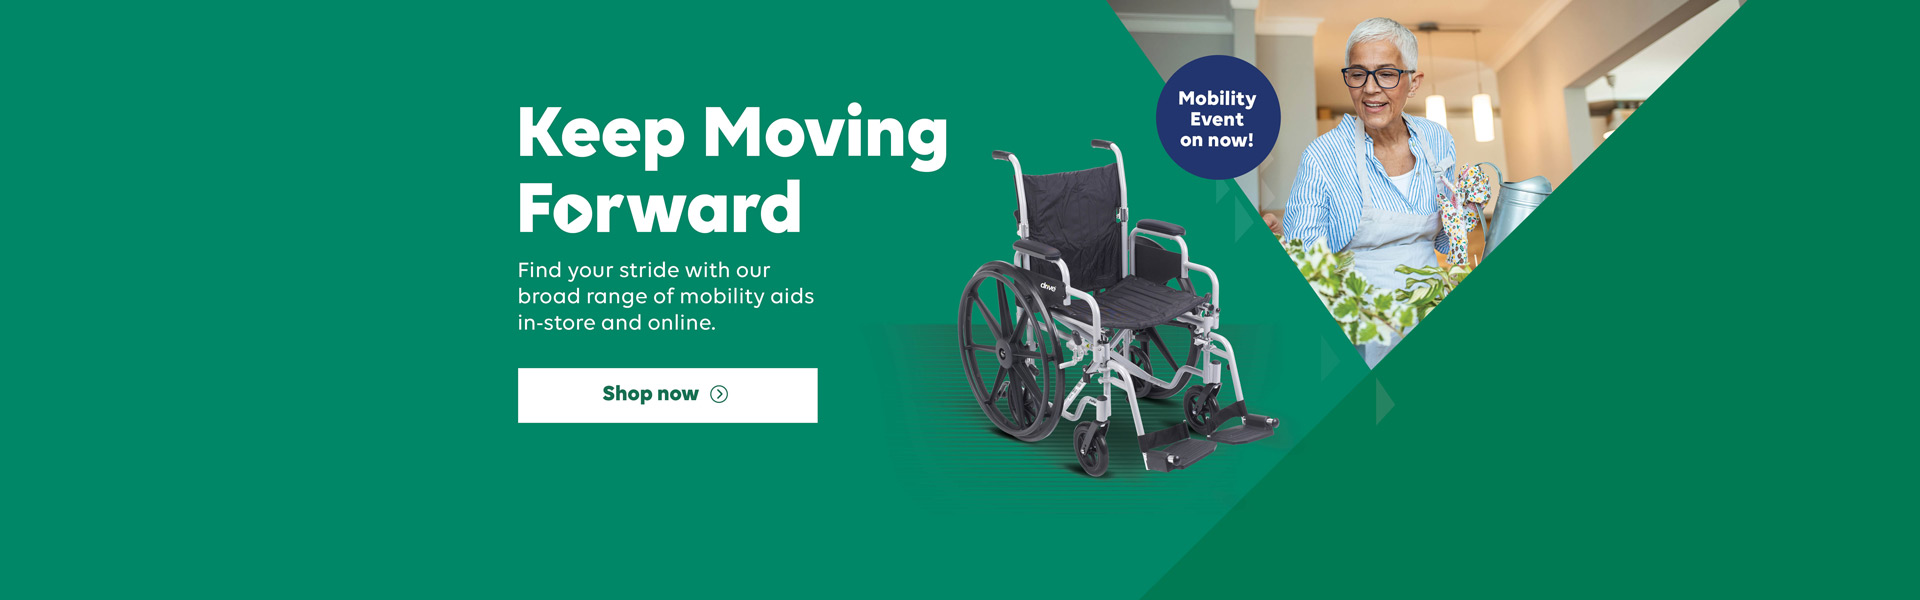 Keep moving forward. Find your stride with our broad range of mobility aids in-store and online. Mobility Event on now! Click to shop now.